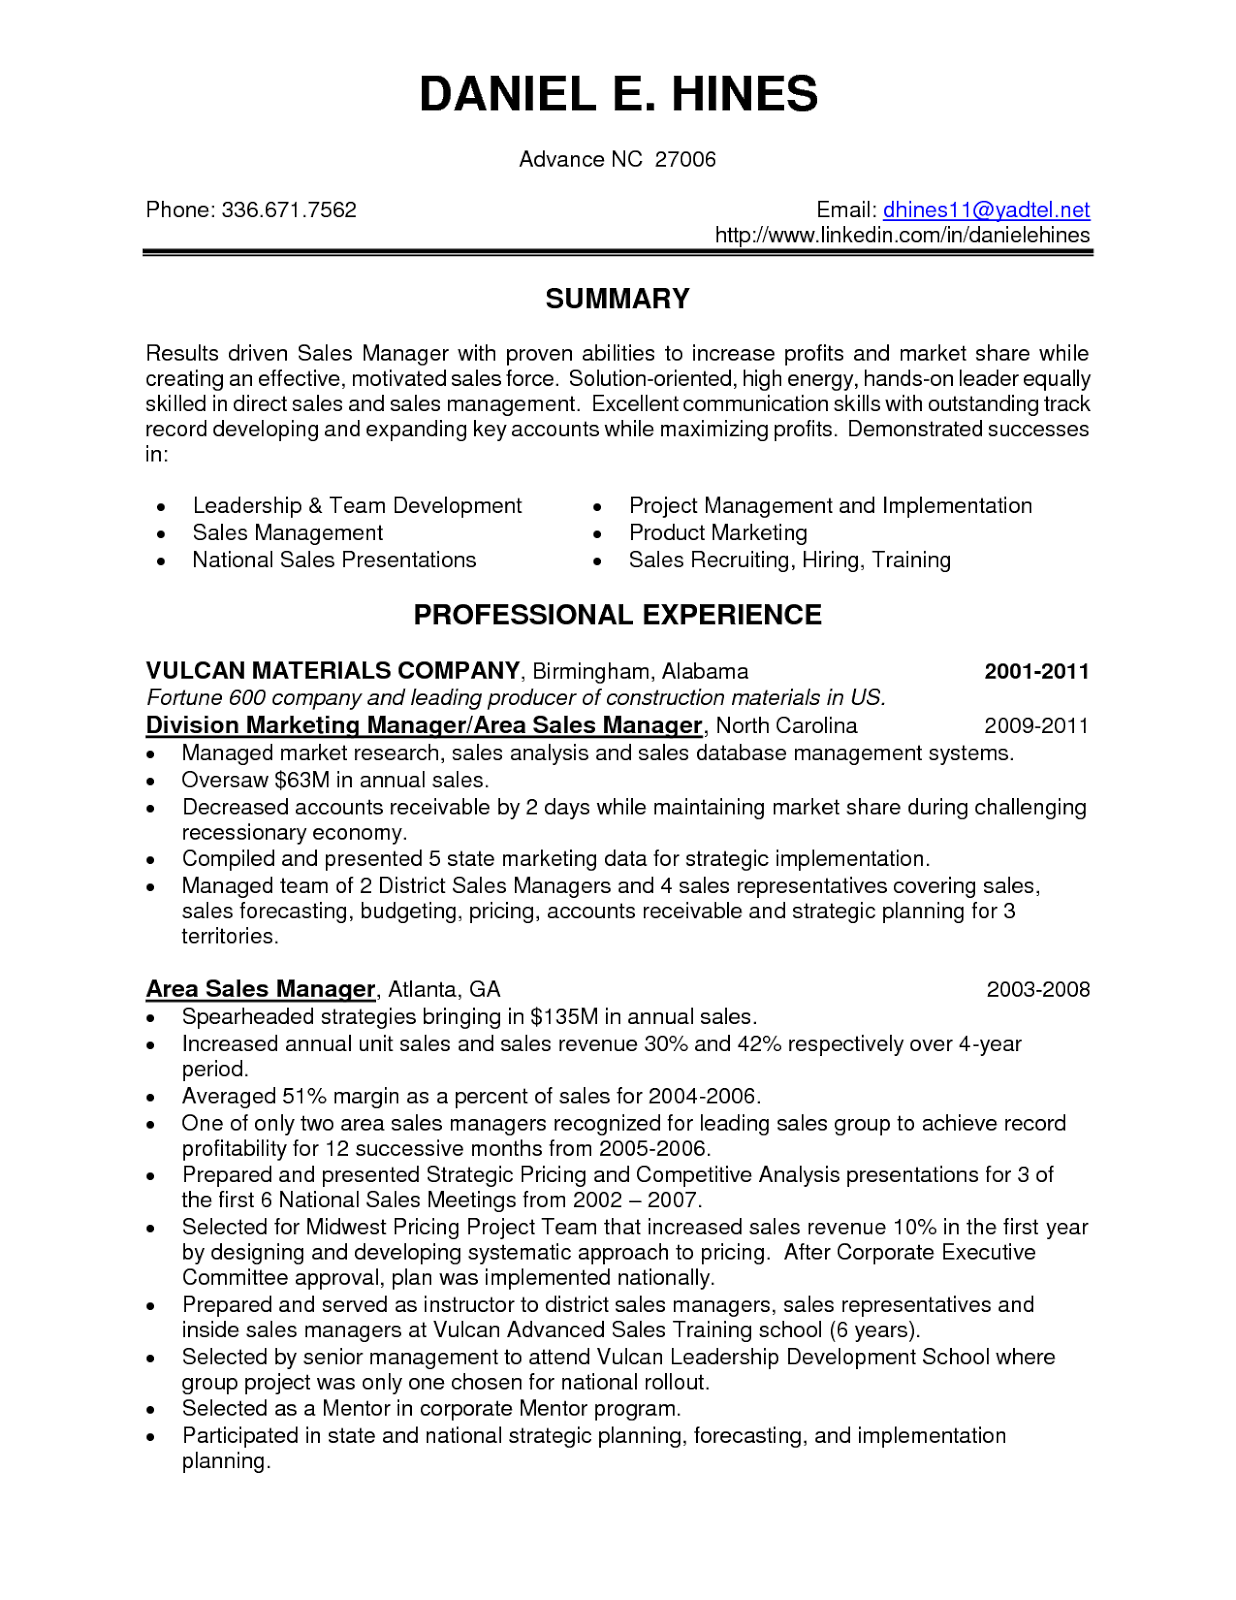 resume sample sales vip resume gray page investment banking executive resume example free sample resume cover - Resume Sample Sales